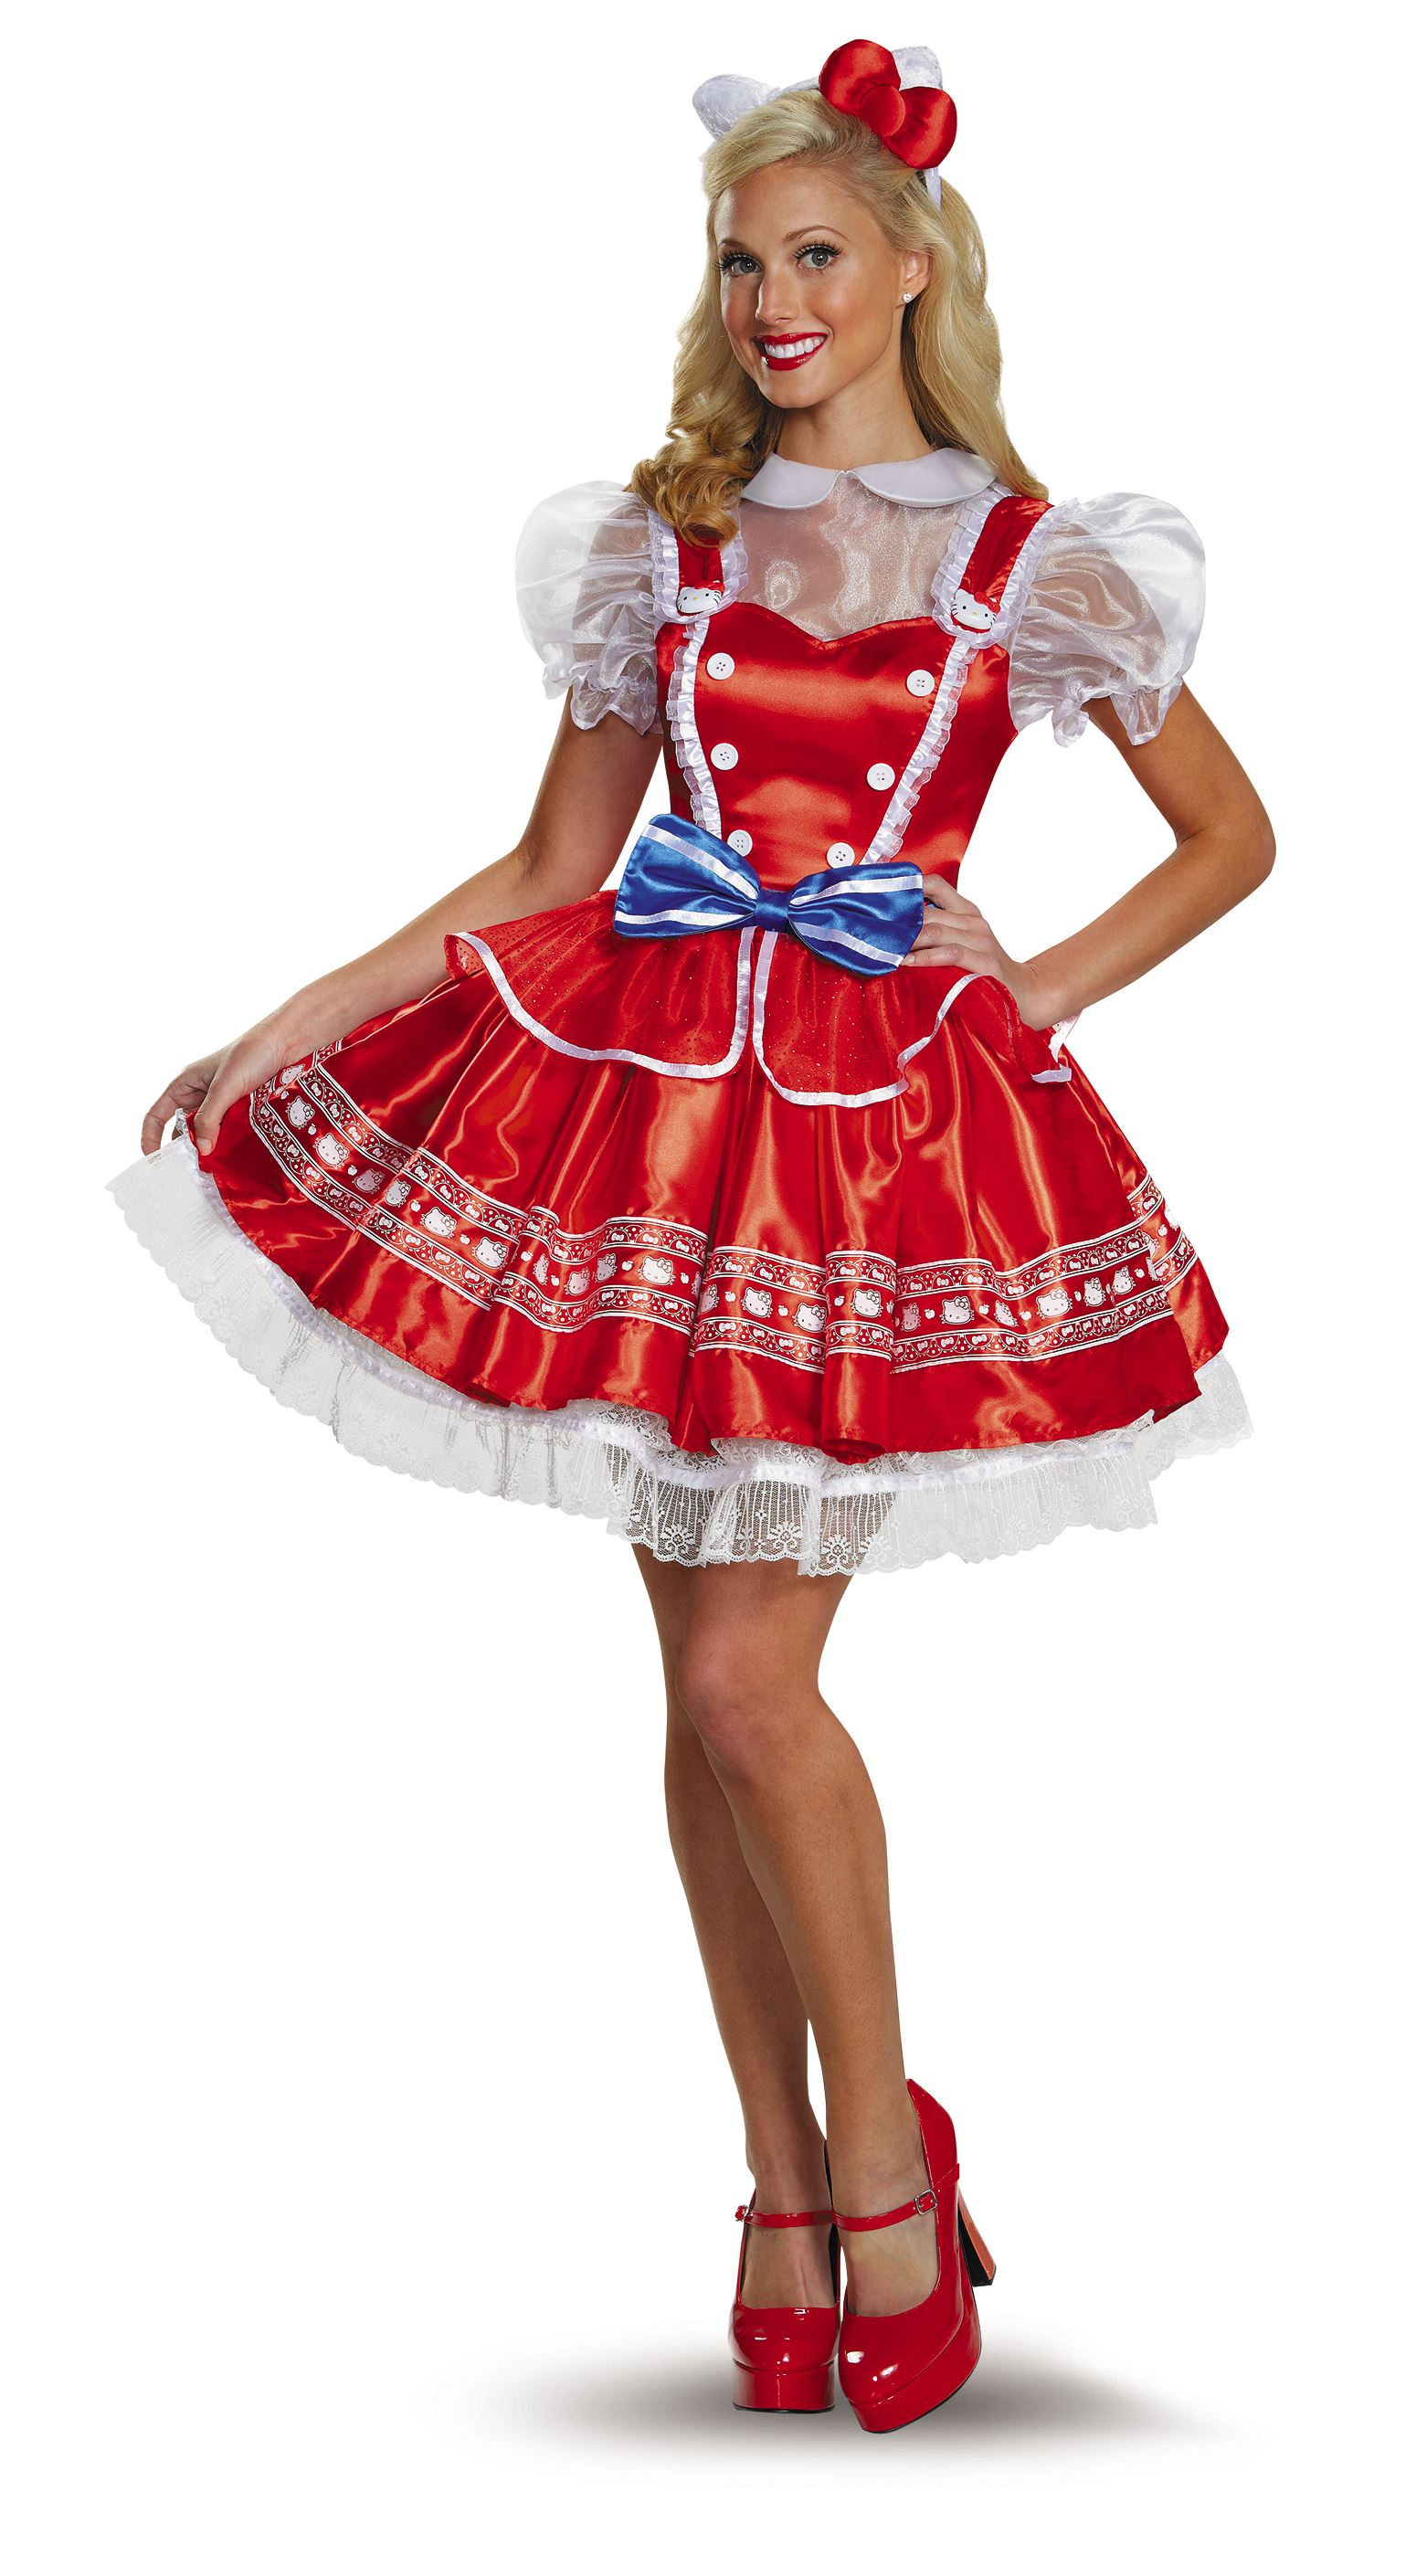 a2d098ae4 ... Adult Hello Kitty Woman Lolita Deluxe Costume. Click here to view Large  Image